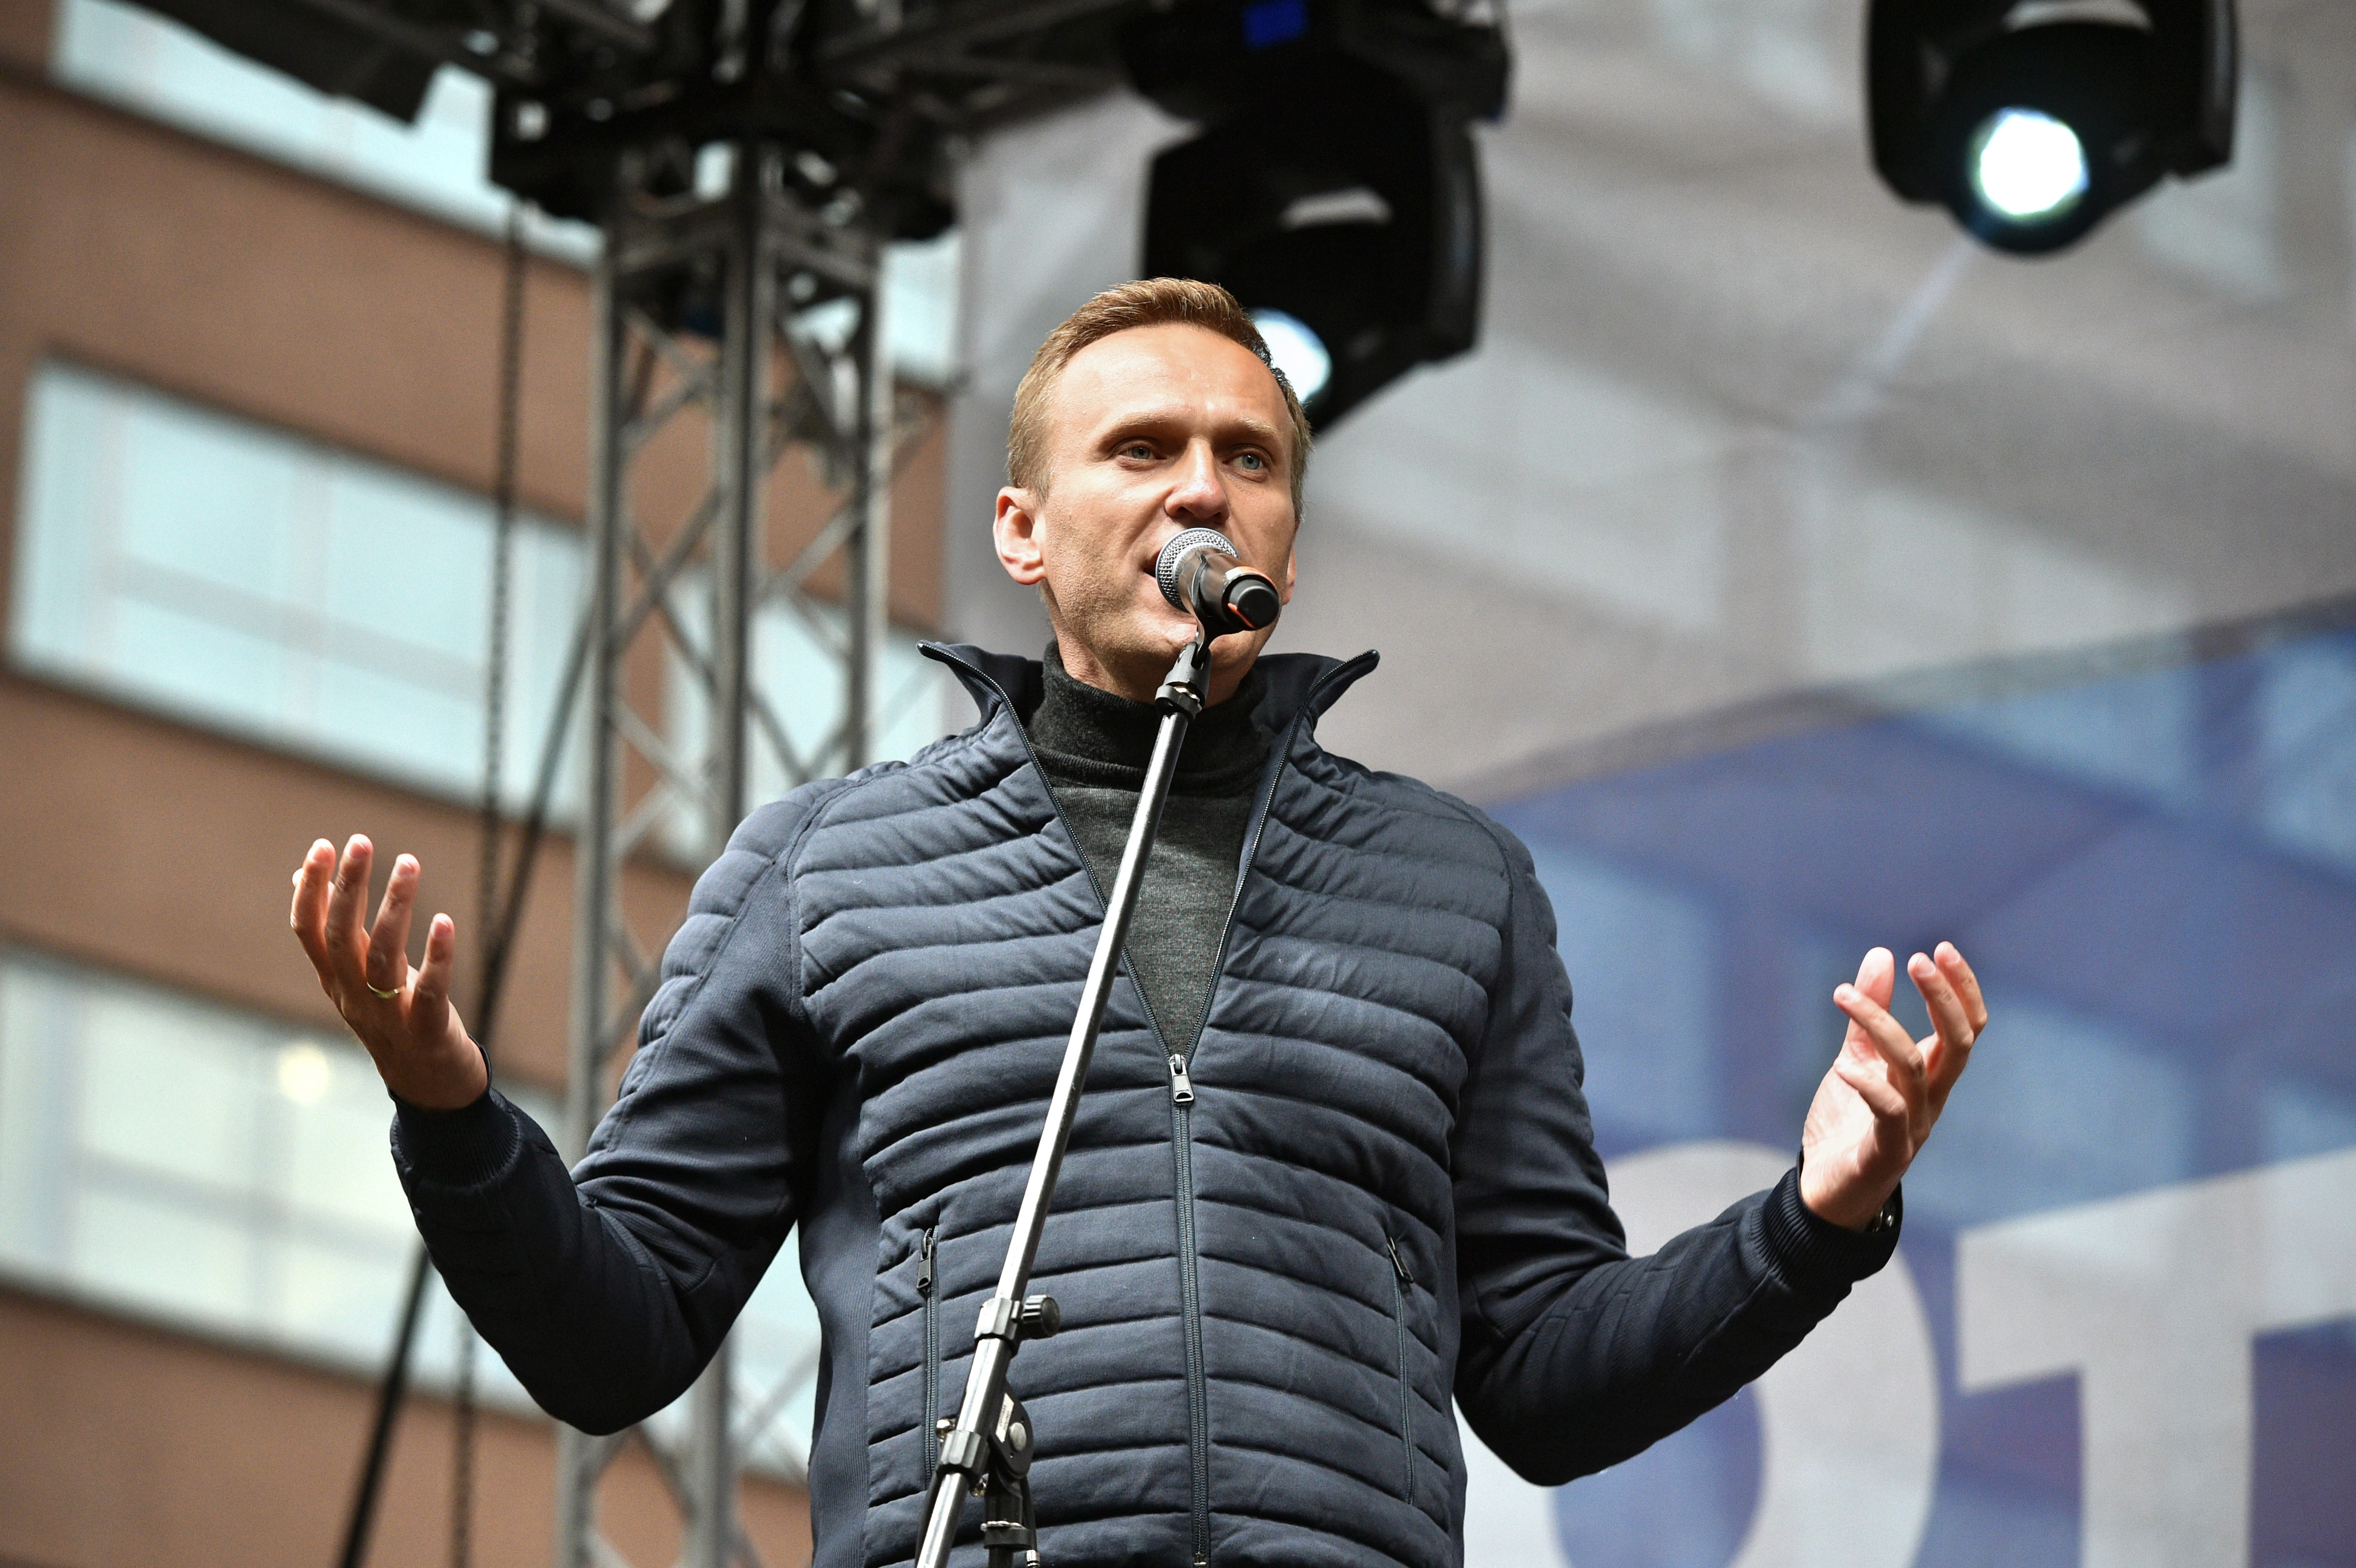 Rally to support political prisoners at Academician Sakharov Prospect. Head of the Anti-Corruption Fund Alexei Navalny at the rally. September 29 2019. Russia, Moscow Photo credit: Peter Kassin/Kommersant/Sipa USA